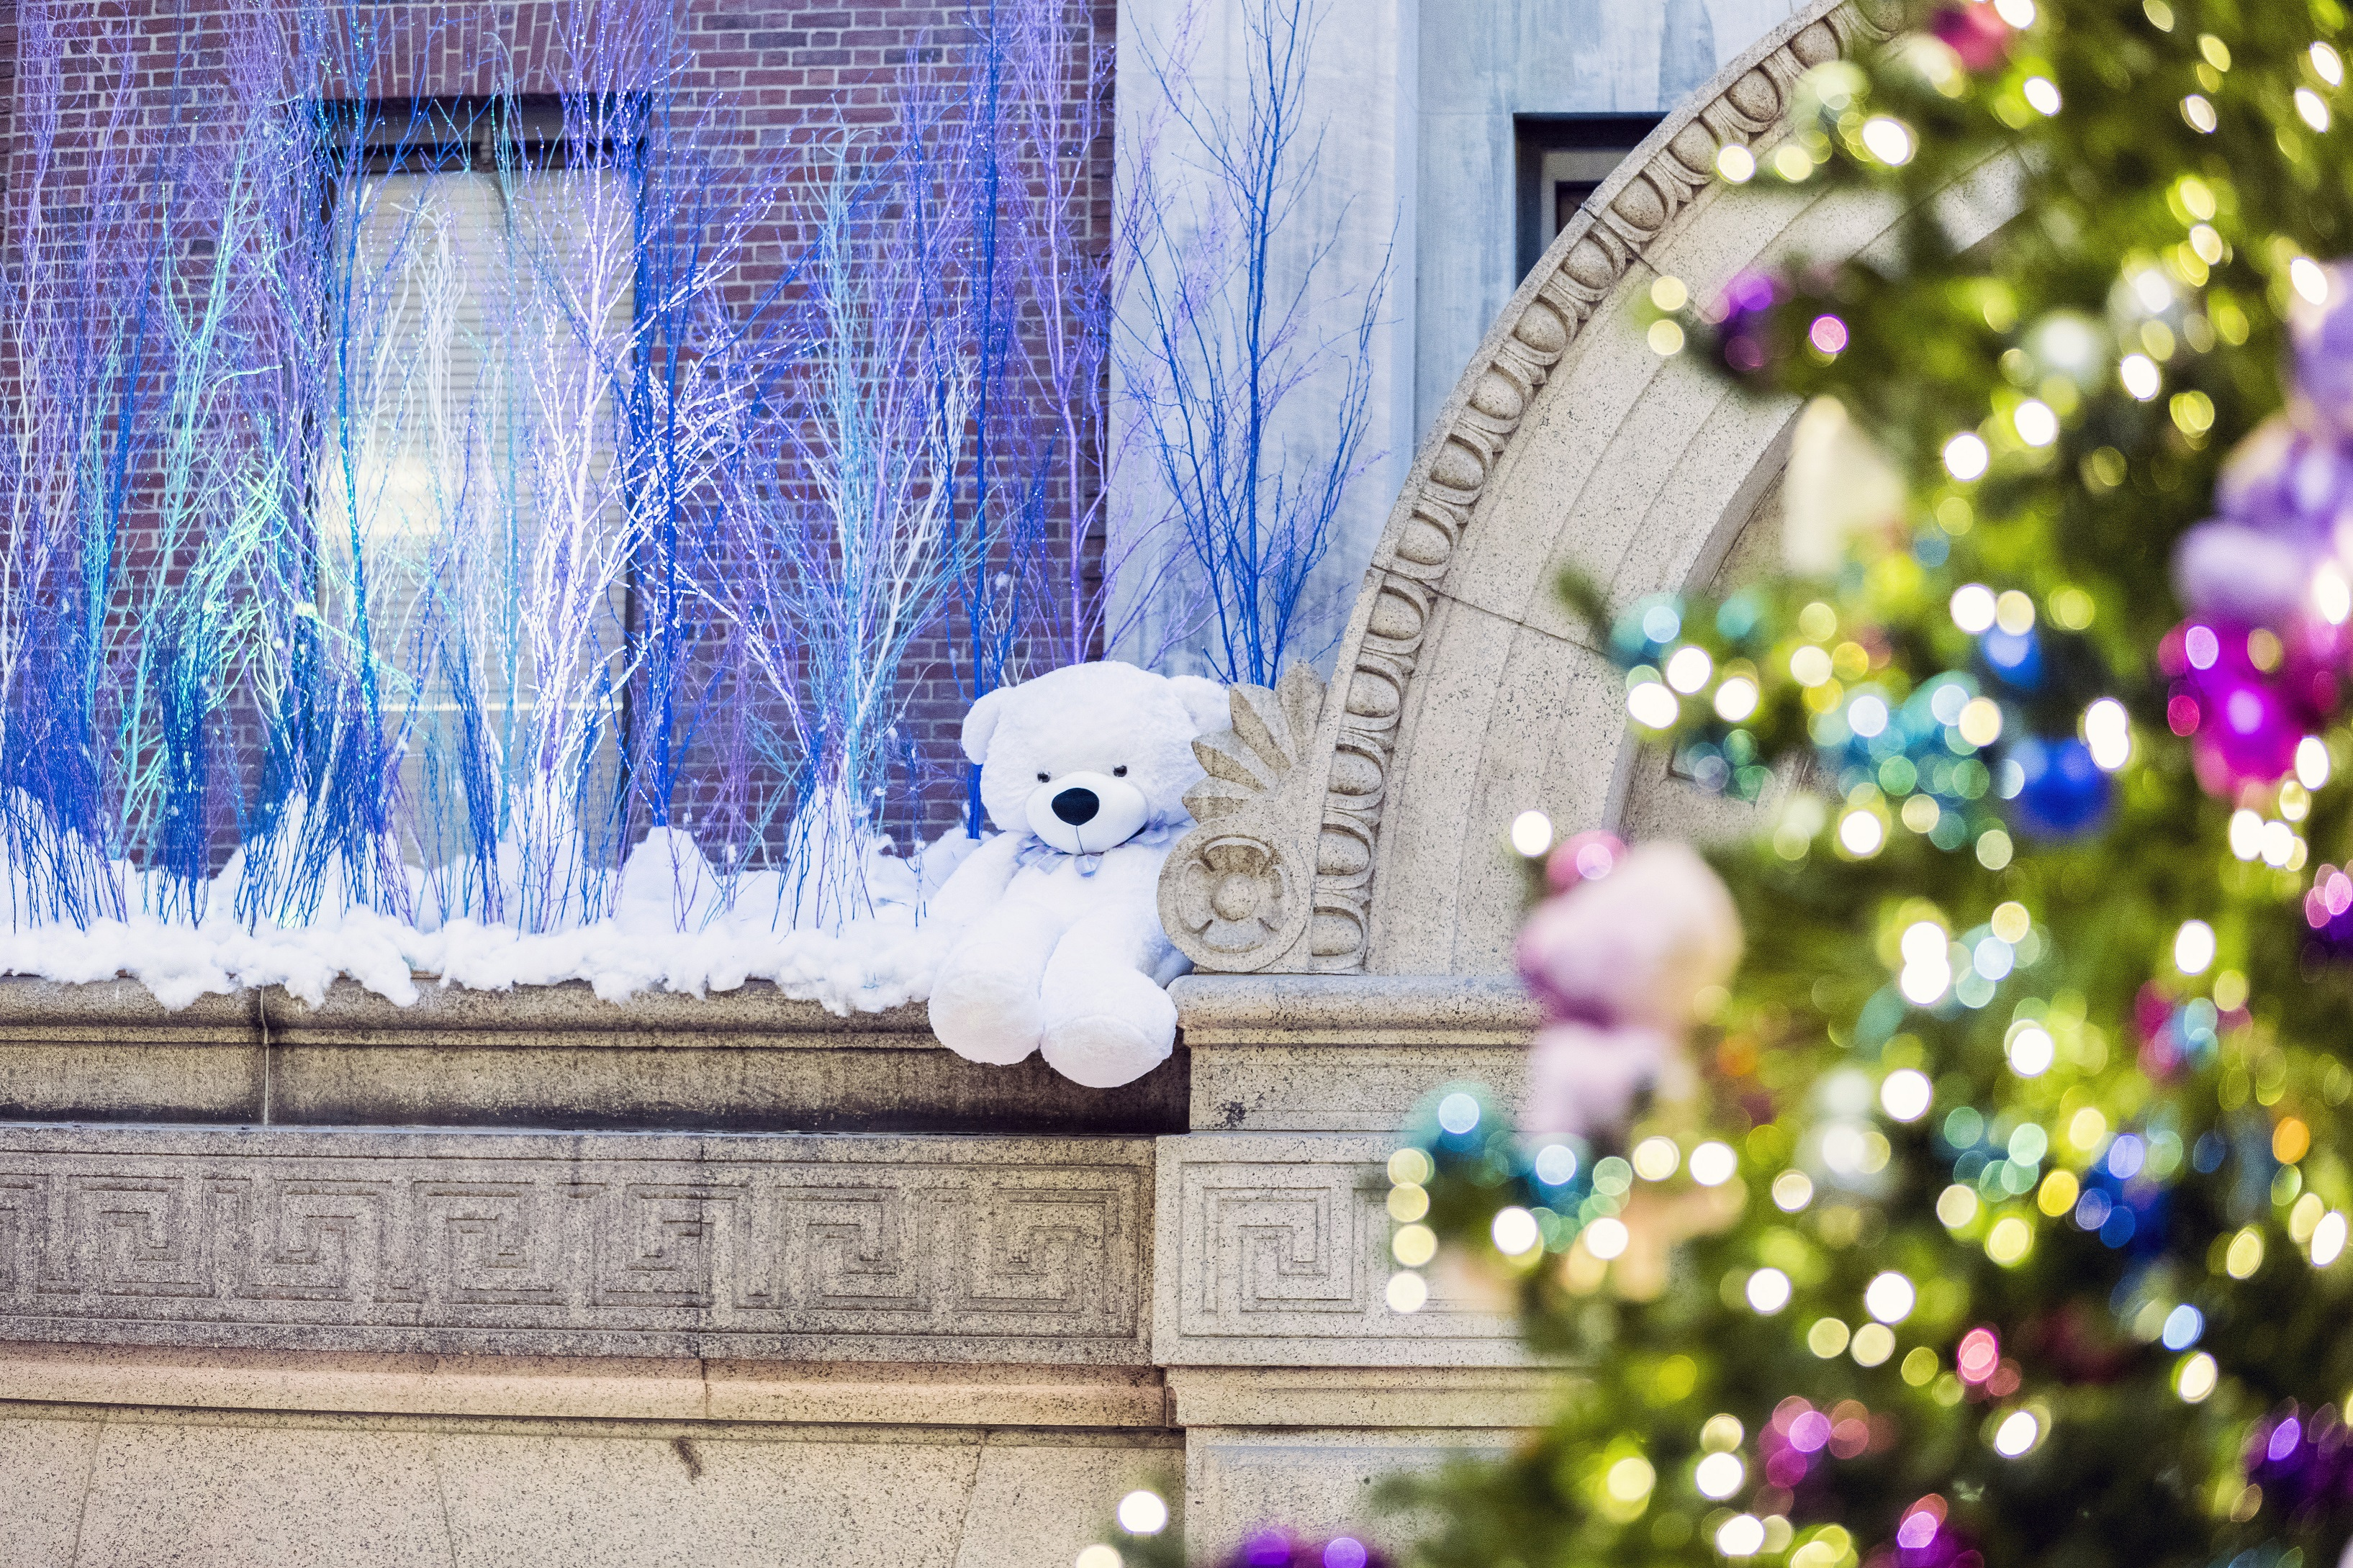 The custom theme of this frozen forest fantasy creates a winterscape filled with jewel tones and teddy bears.